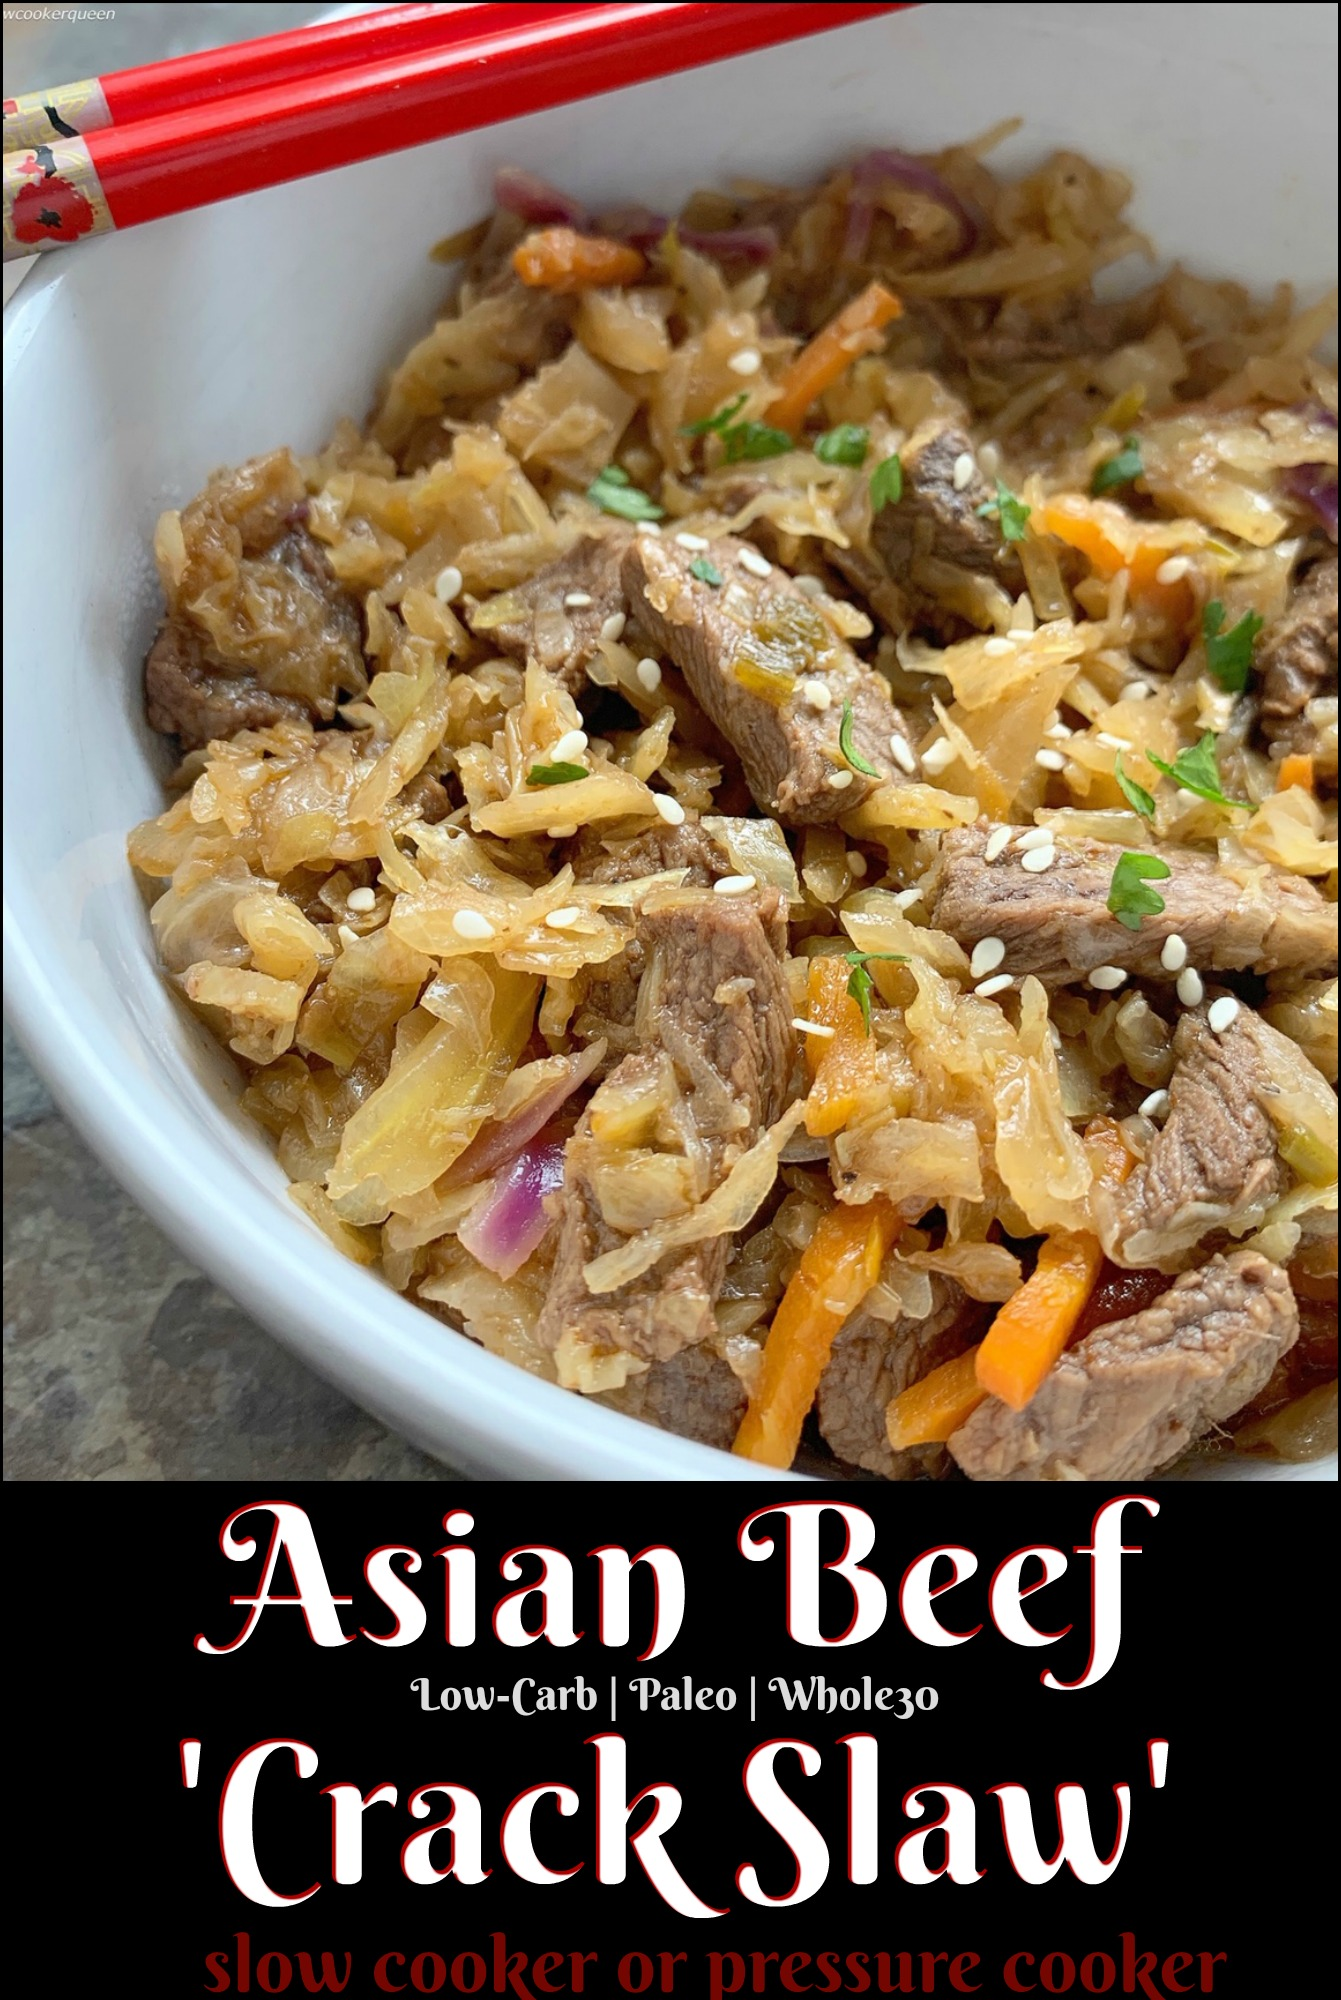 A homemade Asian-inspired sauce cooks with beef and coleslaw in this this low-carb, paleo, and whole30 recipe. Make this easy & healthy meal in your Instant Pot or slow cooker.